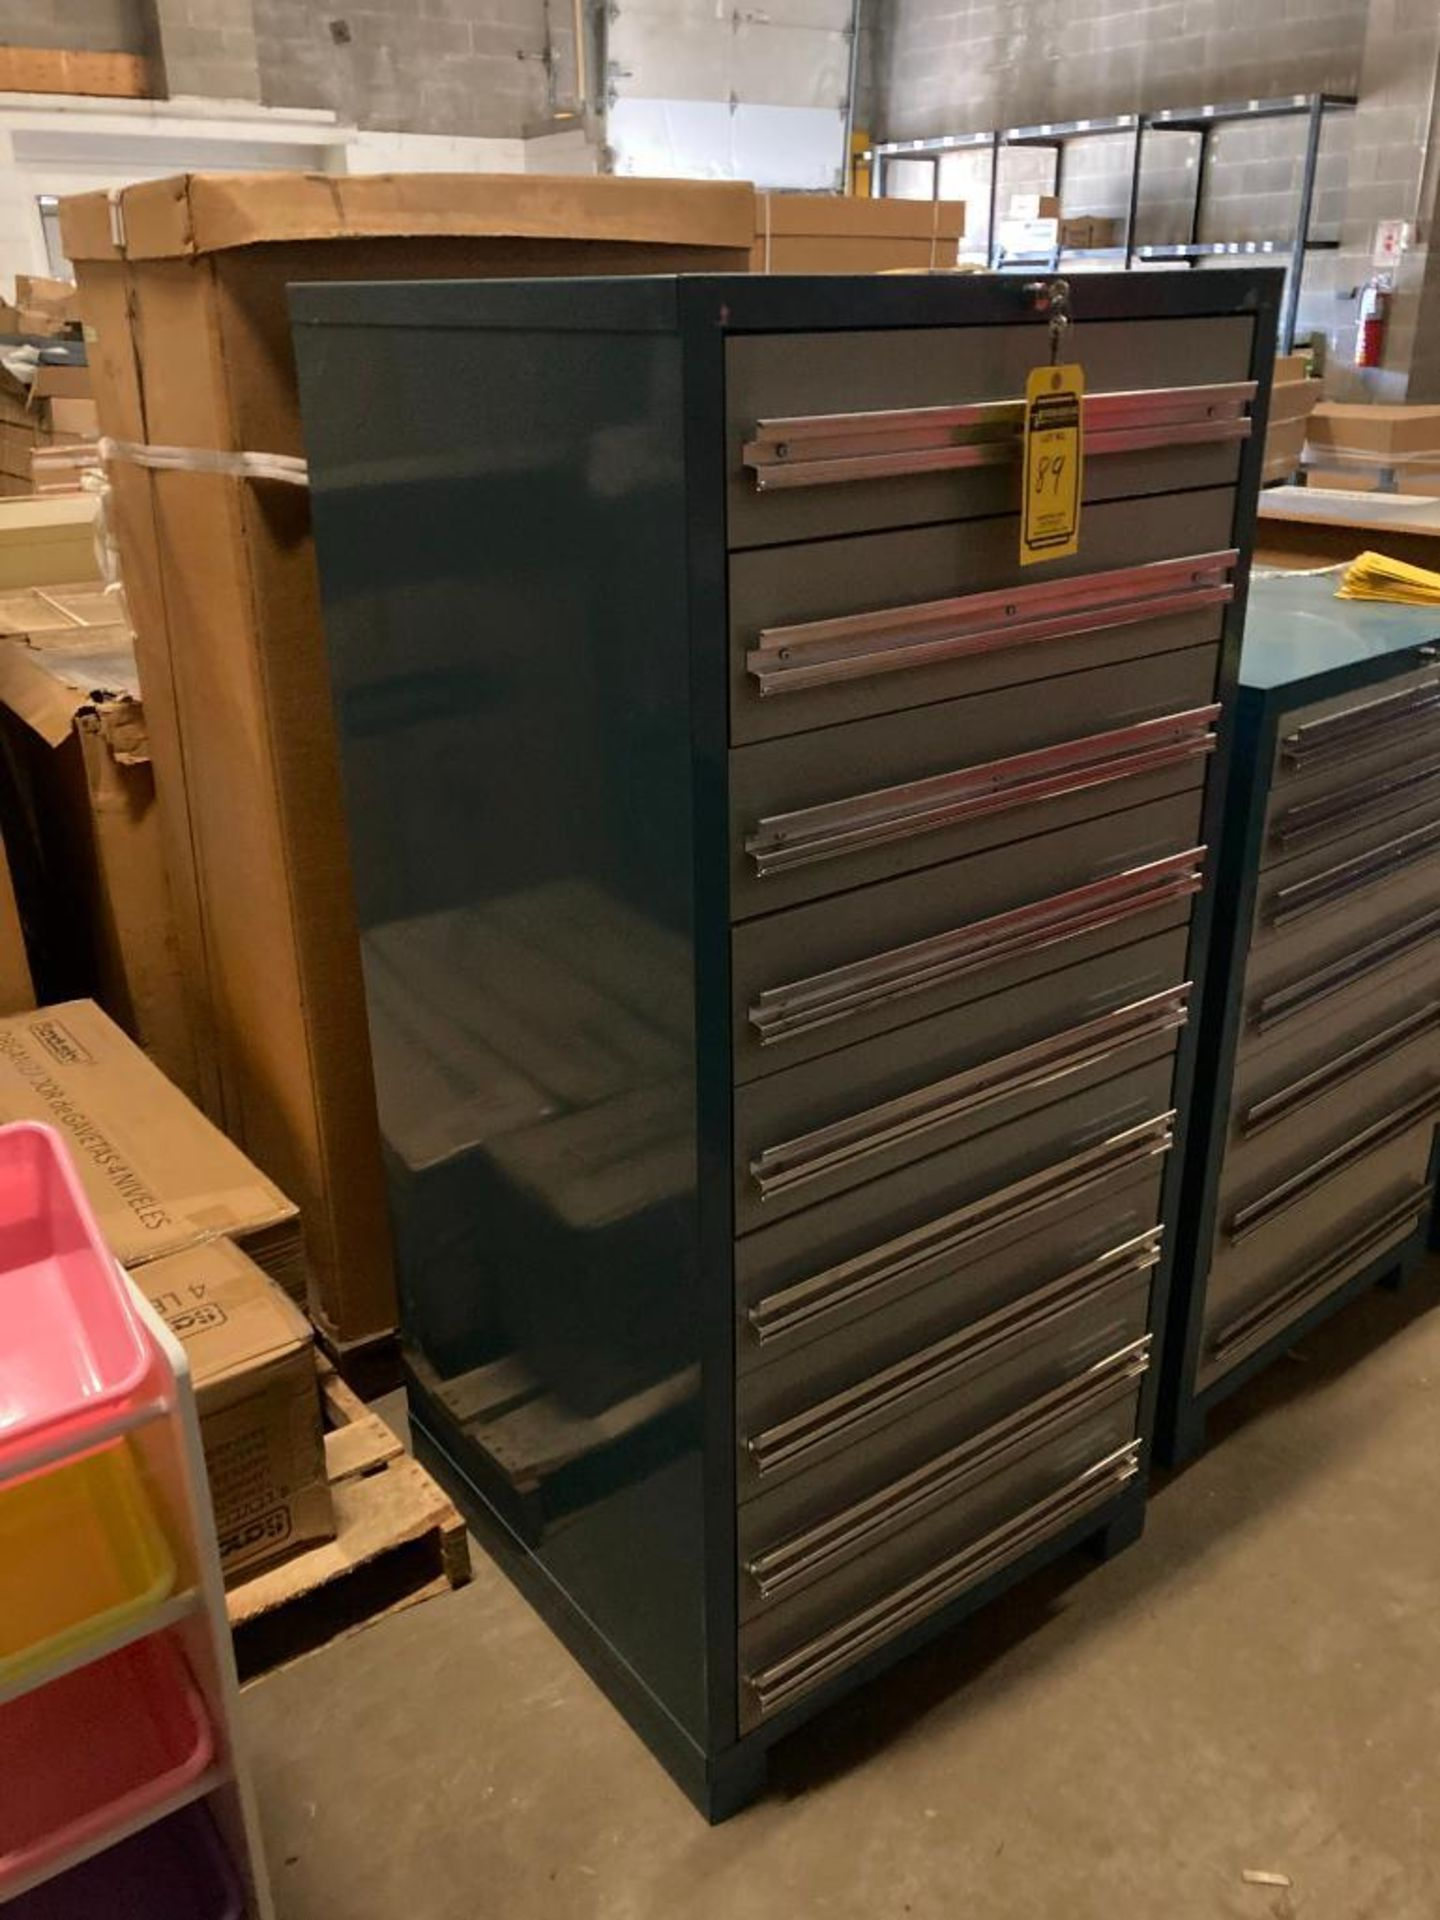 (NEW) EDSEL 9-DRAWER HEAVY DUTY MODULAR TOOLING CABINET; 28.25''W X 61.5''H X 28.25''D; MODEL MDC-9 - Image 2 of 2